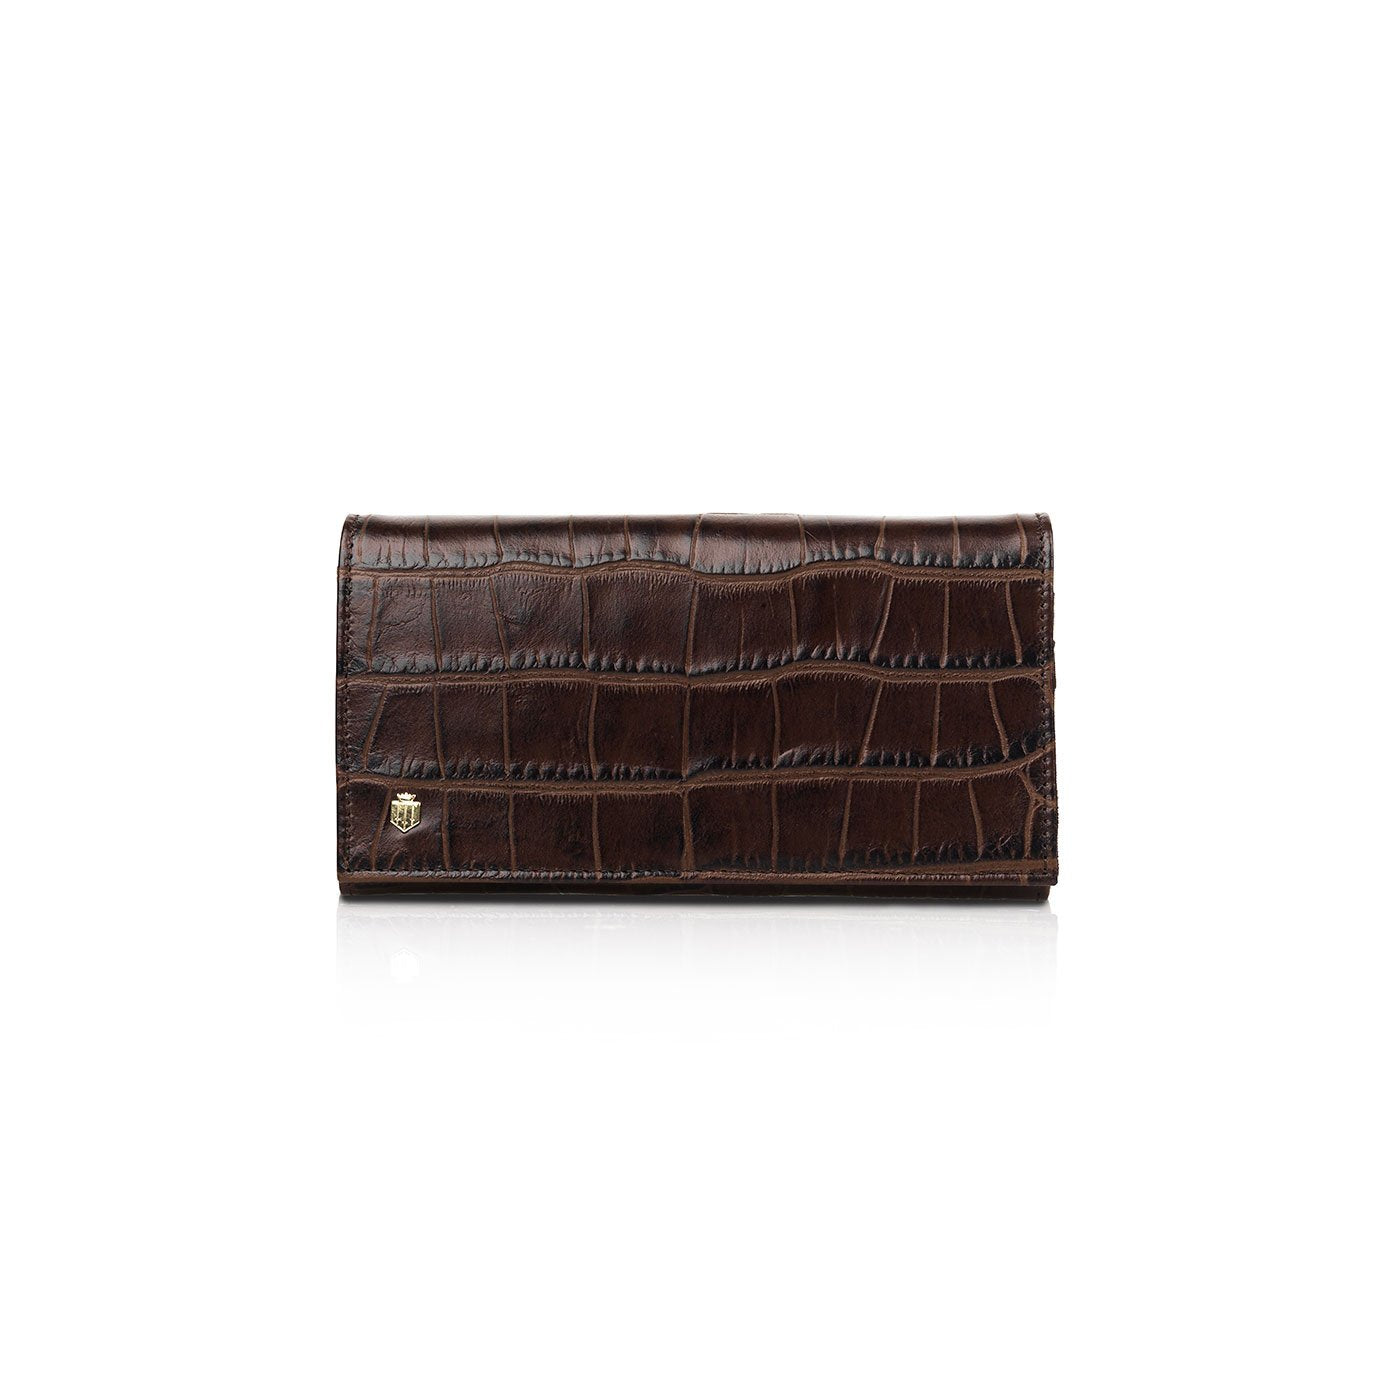 Fairfax and Favor Grosvenor Purse for Ladies in Chocolate Croc